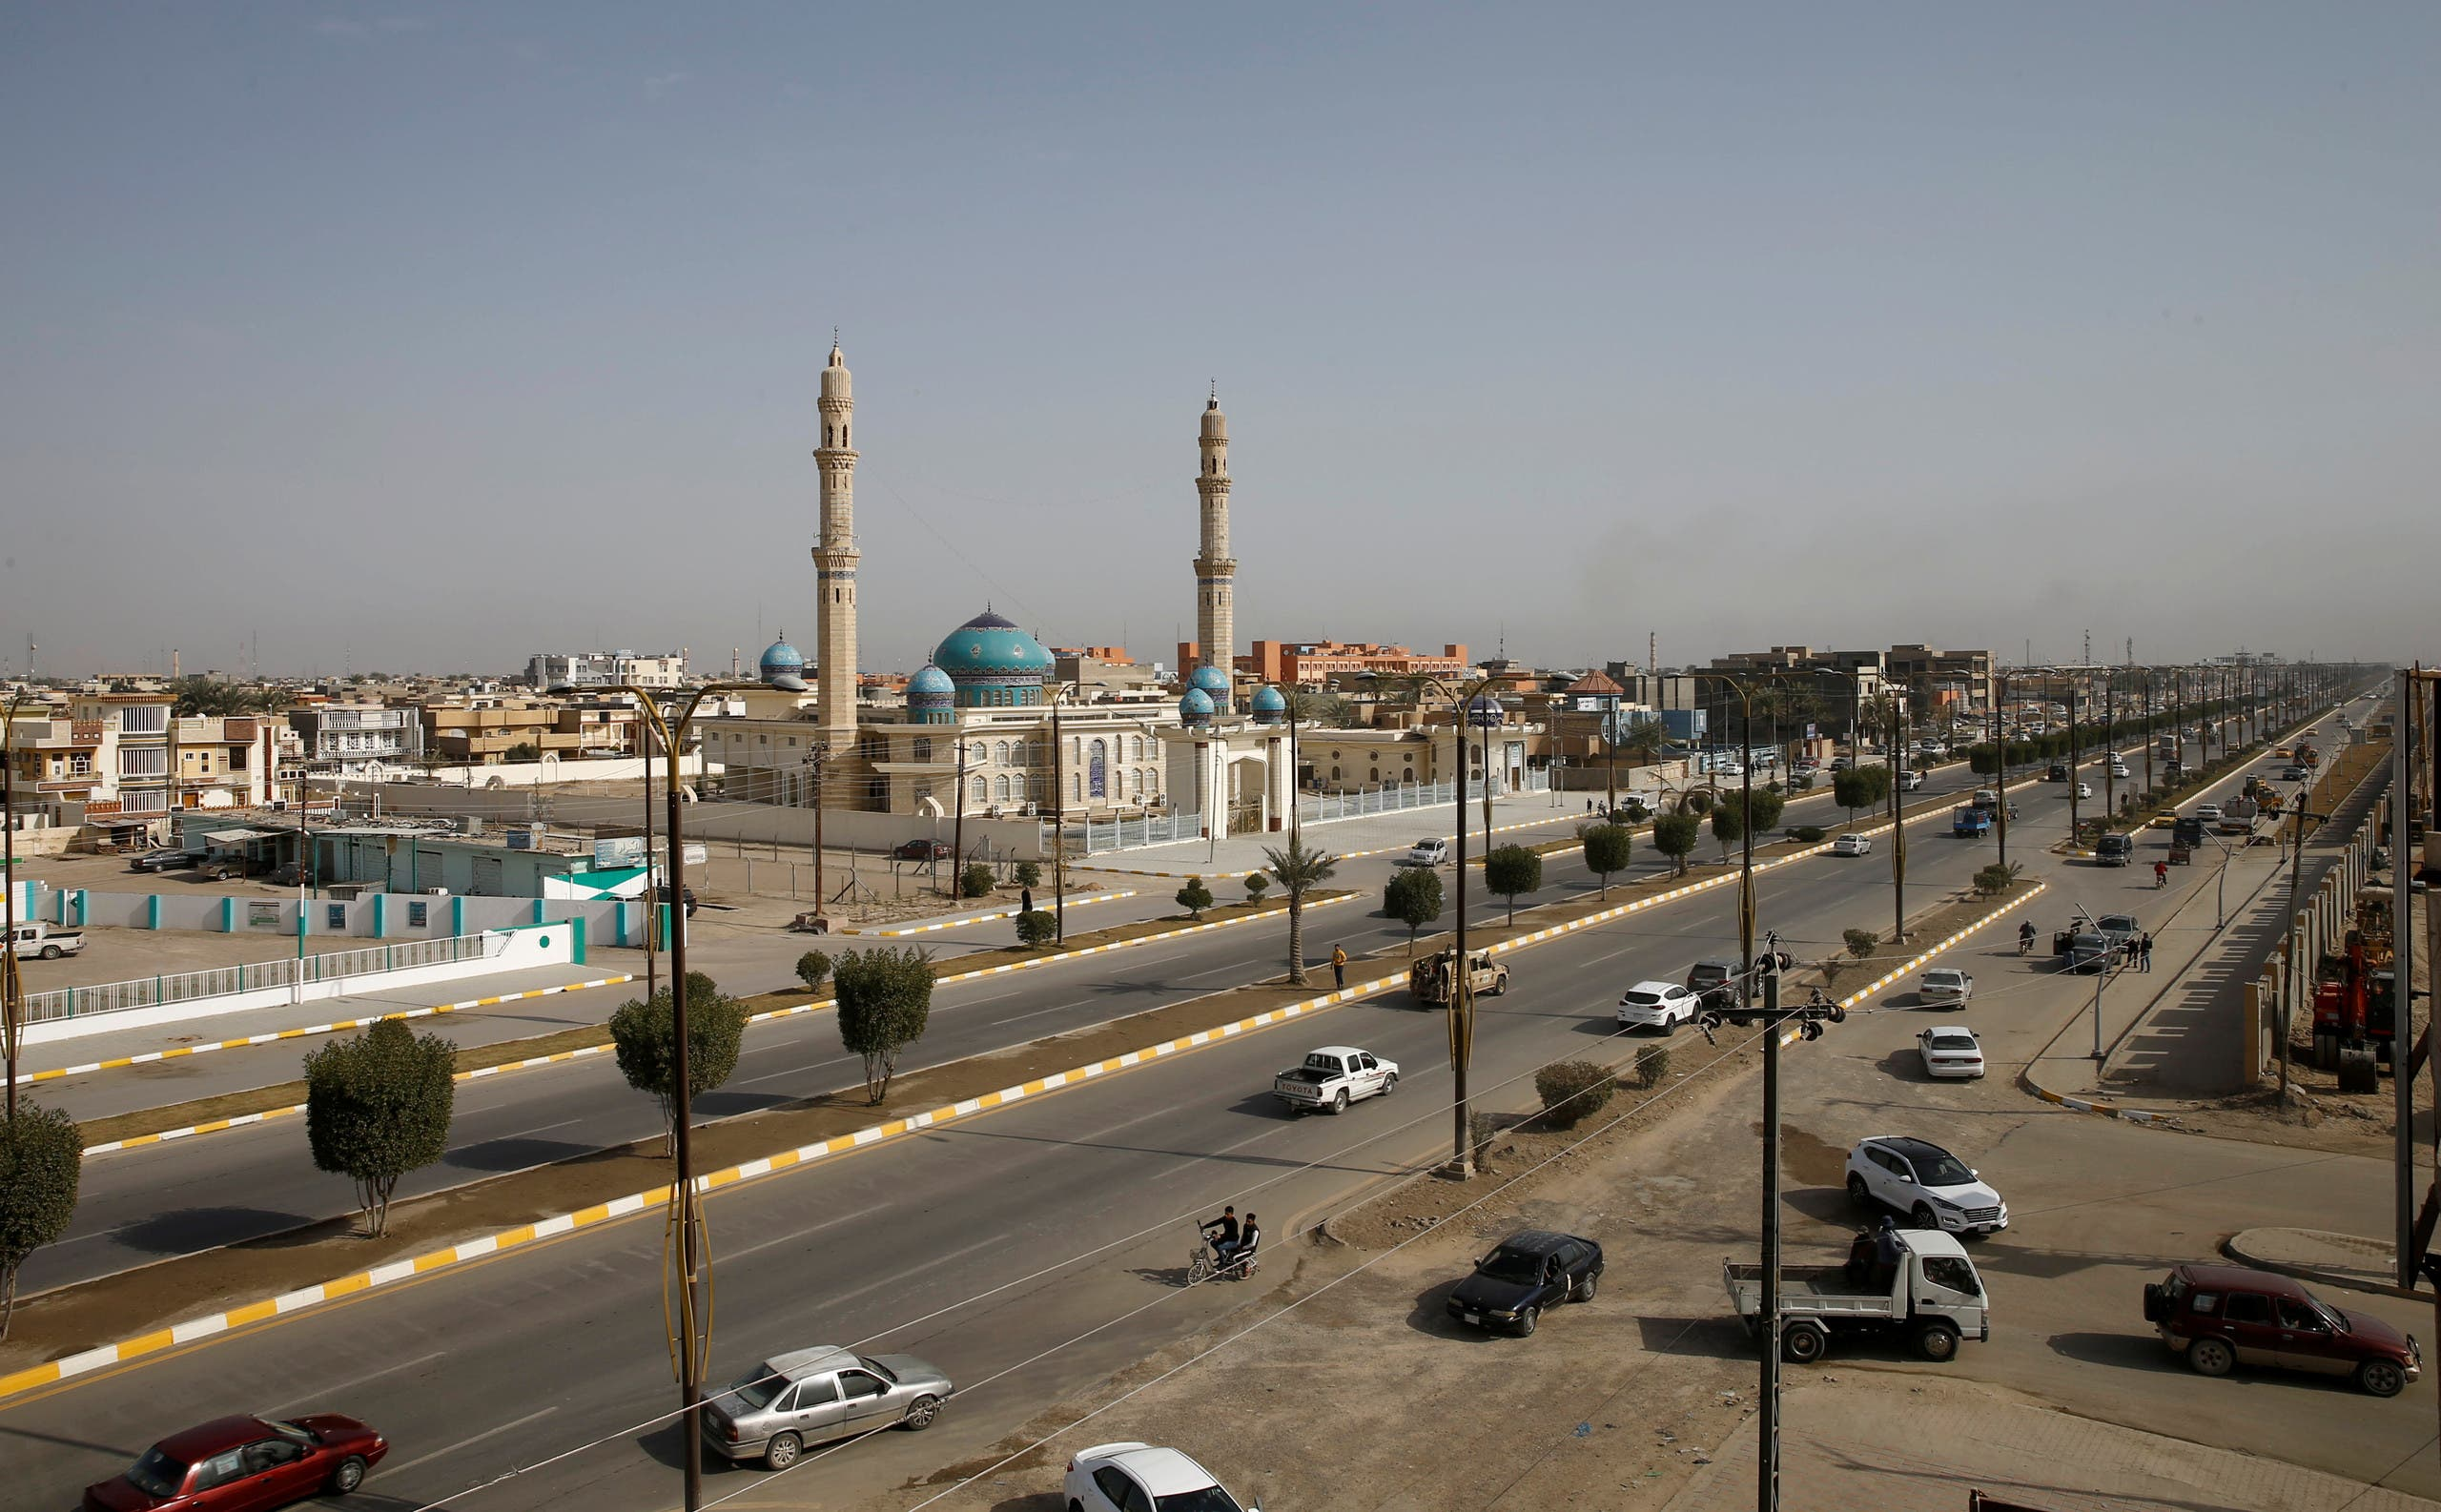 A view shows streets in Fallujah, Iraq February 3, 2021. (Reuters)